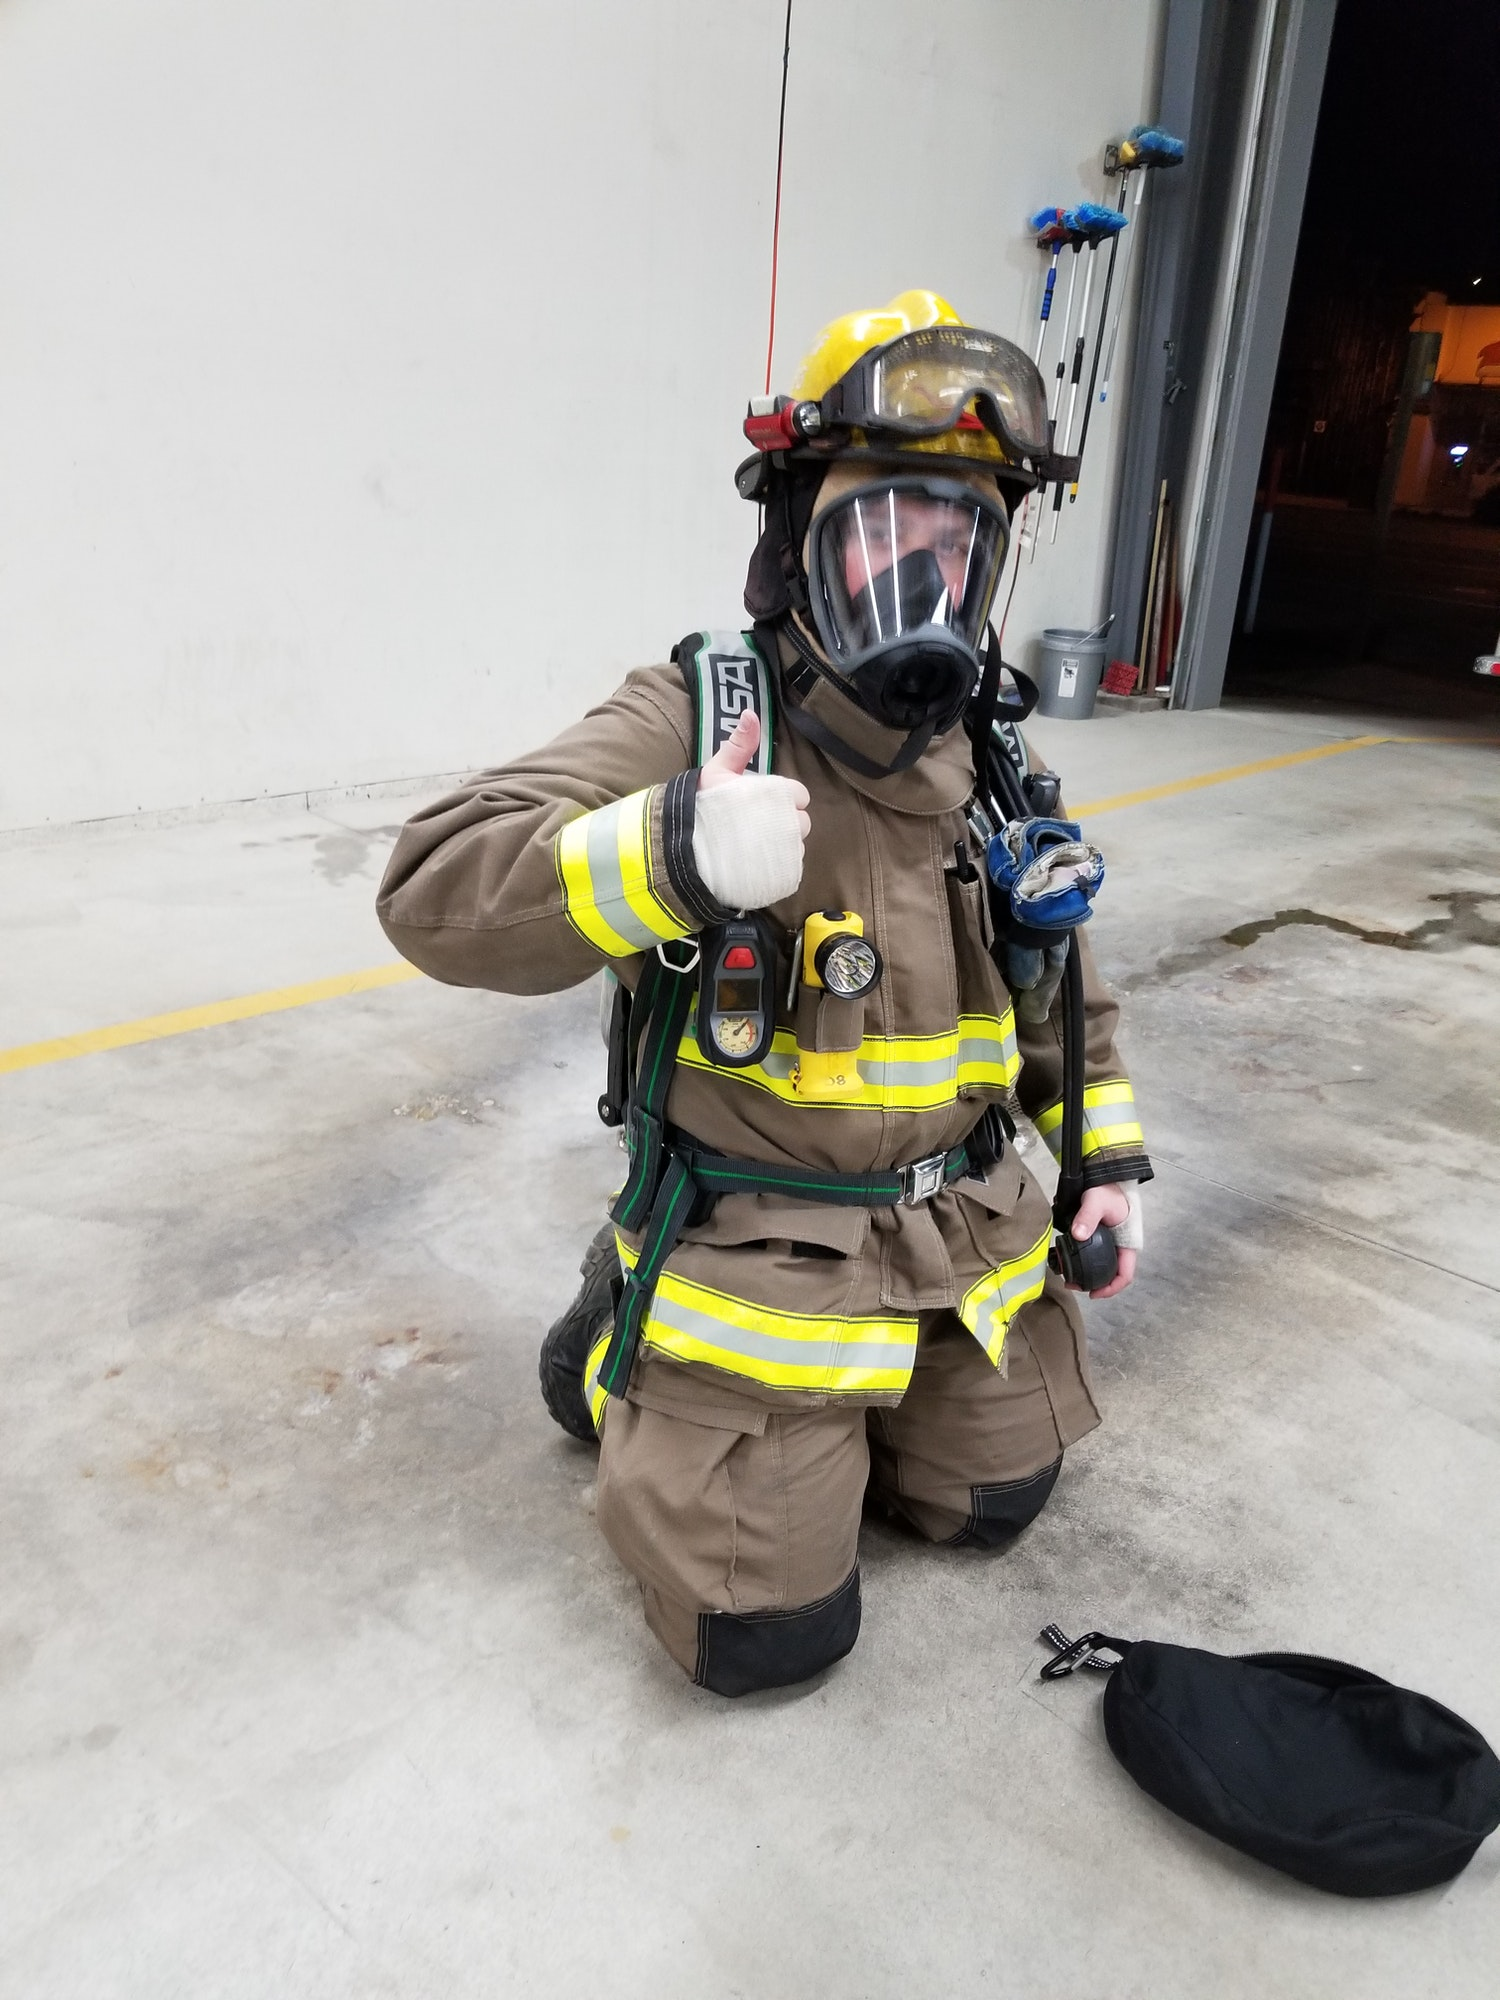 May contain: clothing, apparel, helmet, person, human, and fireman